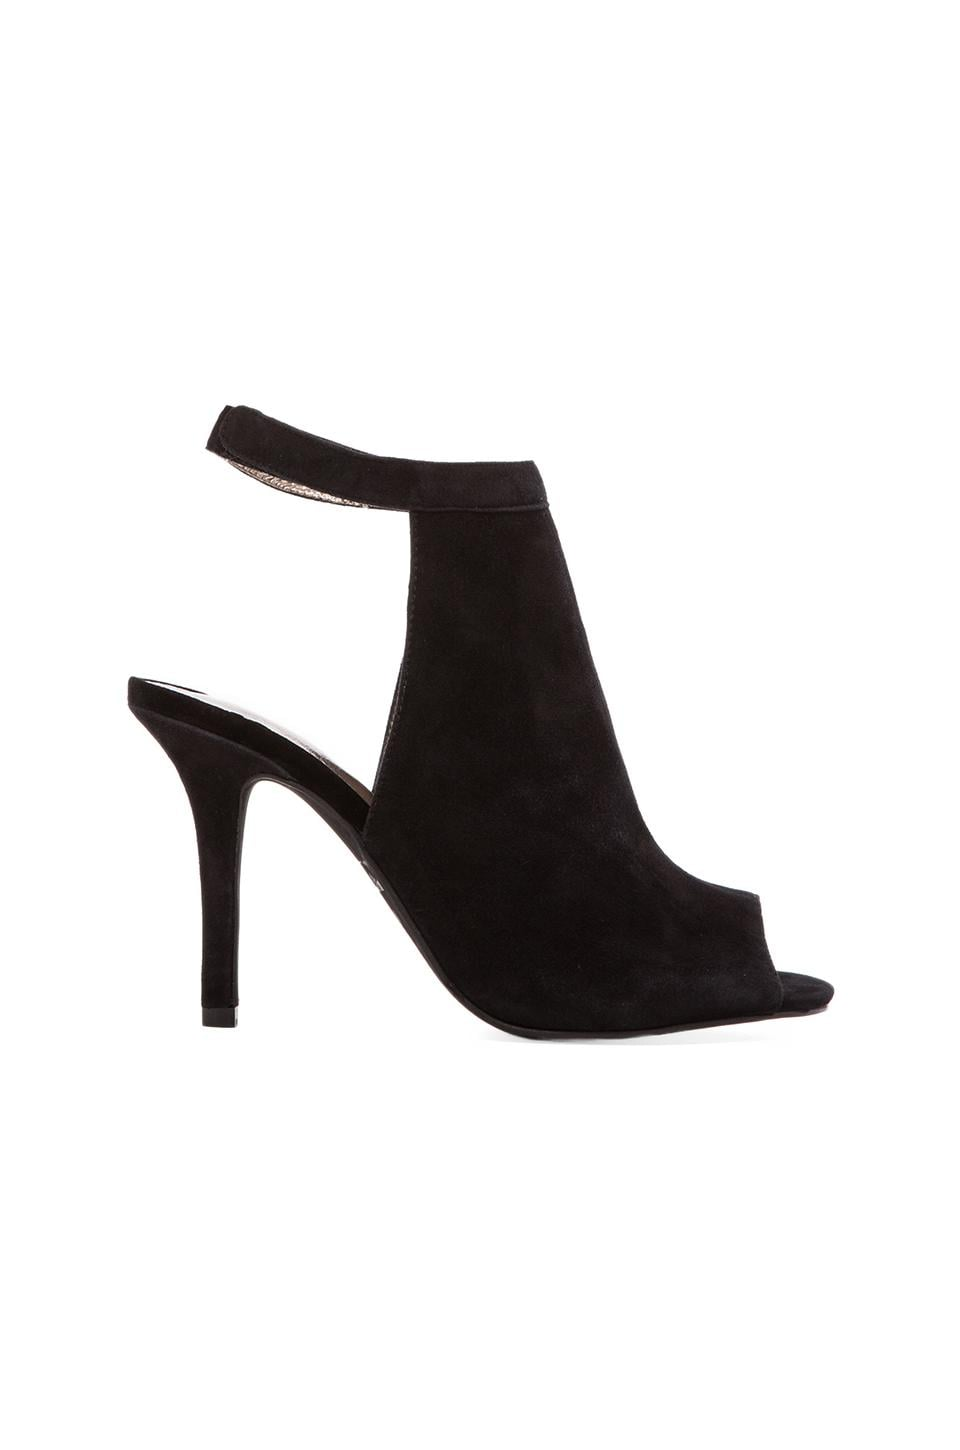 Jeffrey Campbell Lorah Open Toe Bootie in Black Suede